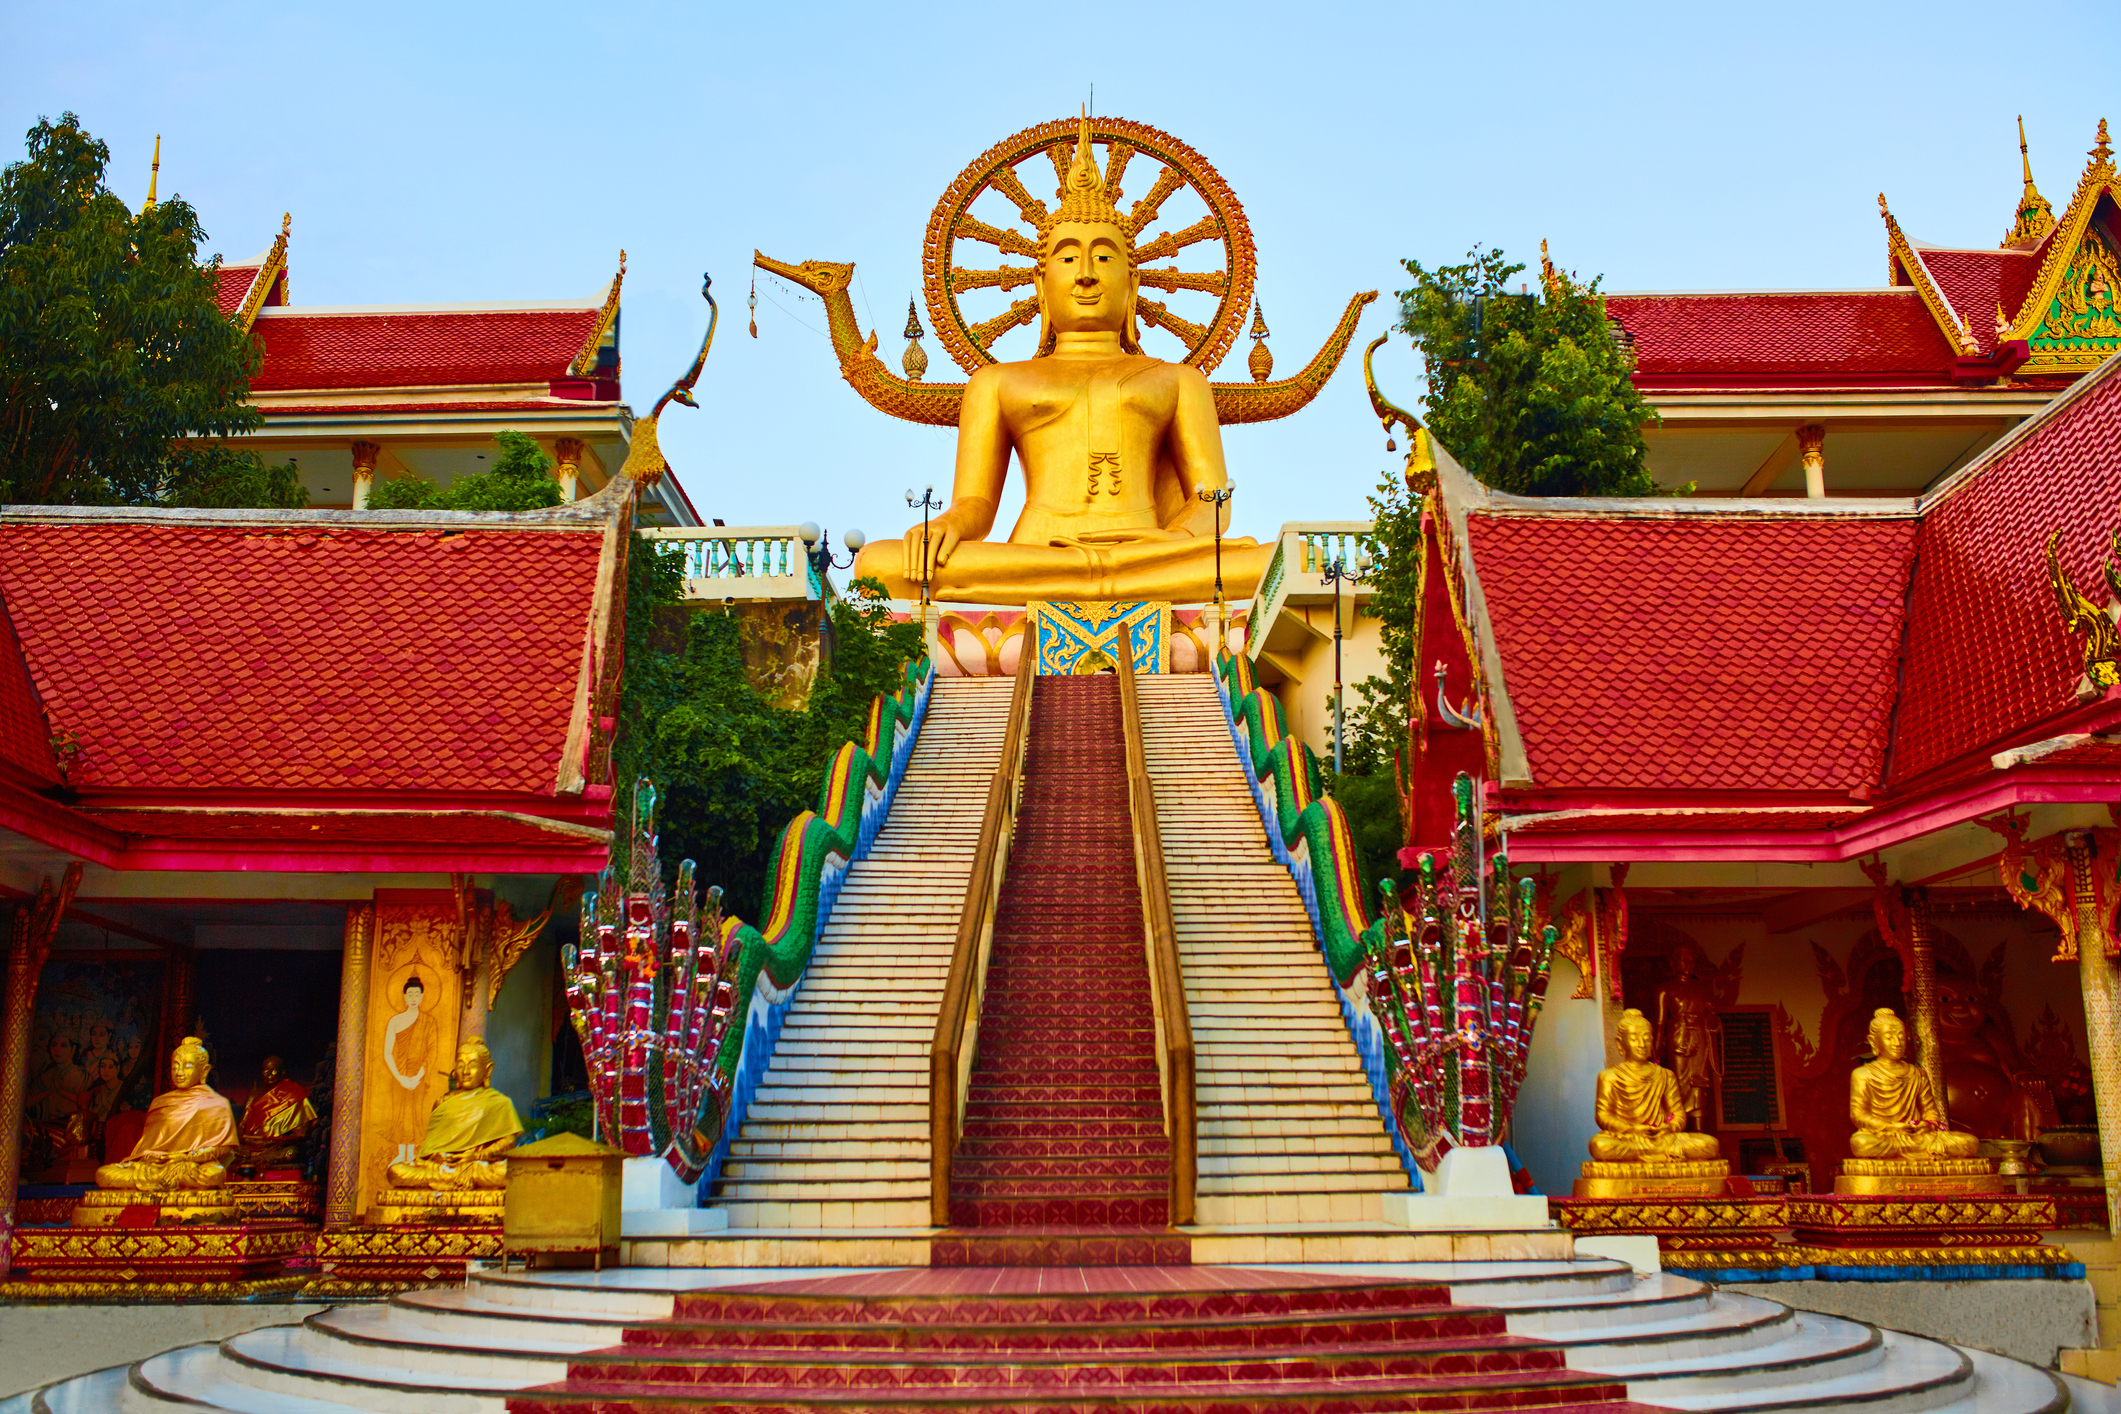 Religion In Thailand. Golden Statue Of Buddha With Dragon Staircase In Wat Phra Yai, The Big Buddha Temple At Koh Samui. Place For Praying, Meditation. Buddhism. Religious Symbol. Travel, Tourism.